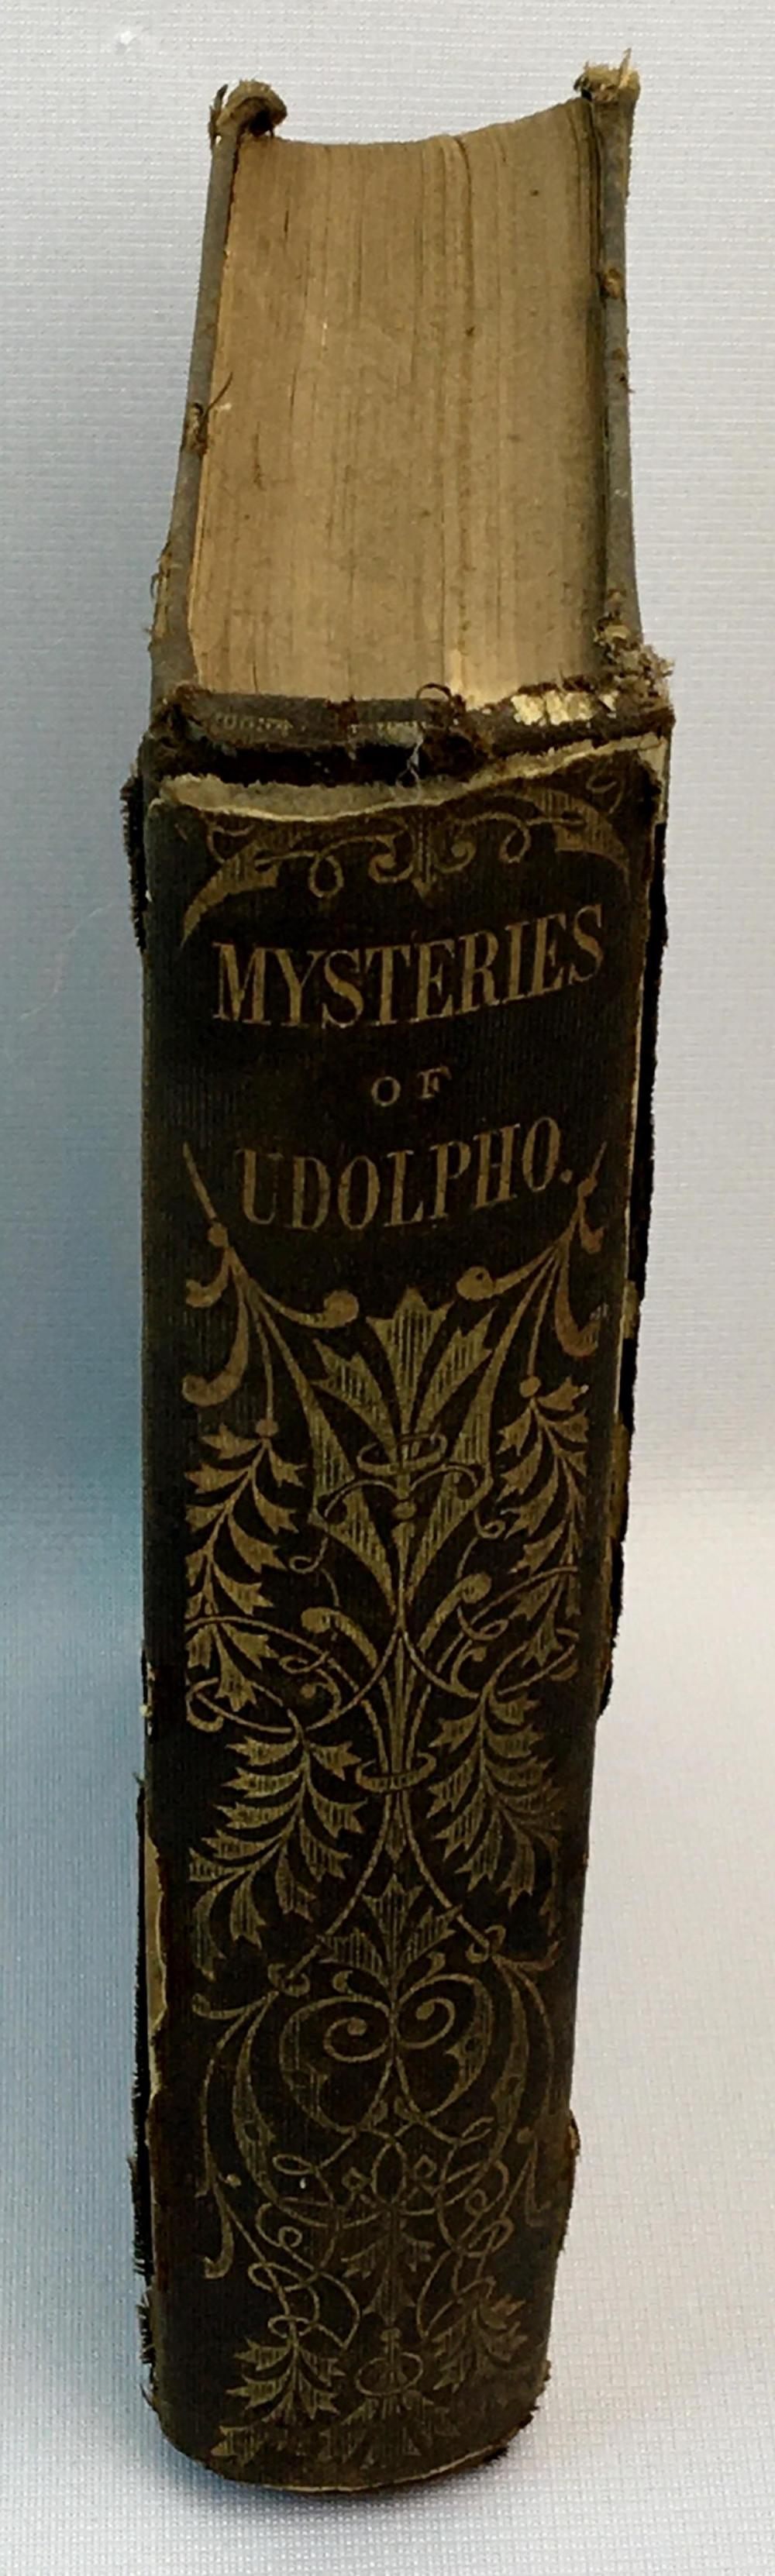 1859 The Mysteries of Udolpho by Mrs. Ann Radcliffe Complete in One Volume